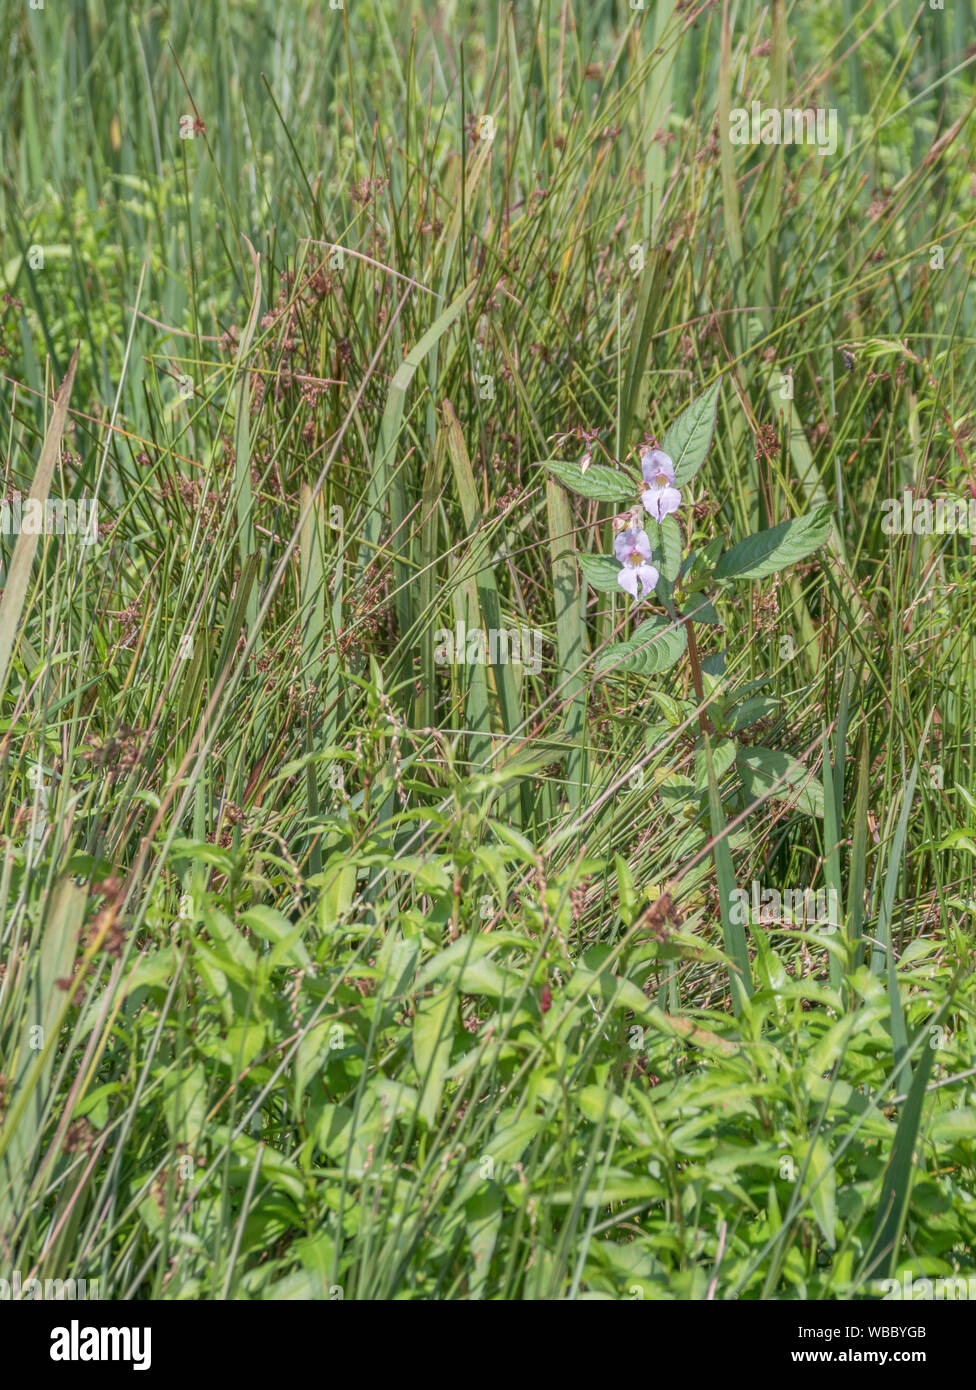 Specimen of troublesome Himalayan Balsam / Impatiens glandulifera. Likes damp soils / ground, riversides, and river banks growing in wet ground. Stock Photo